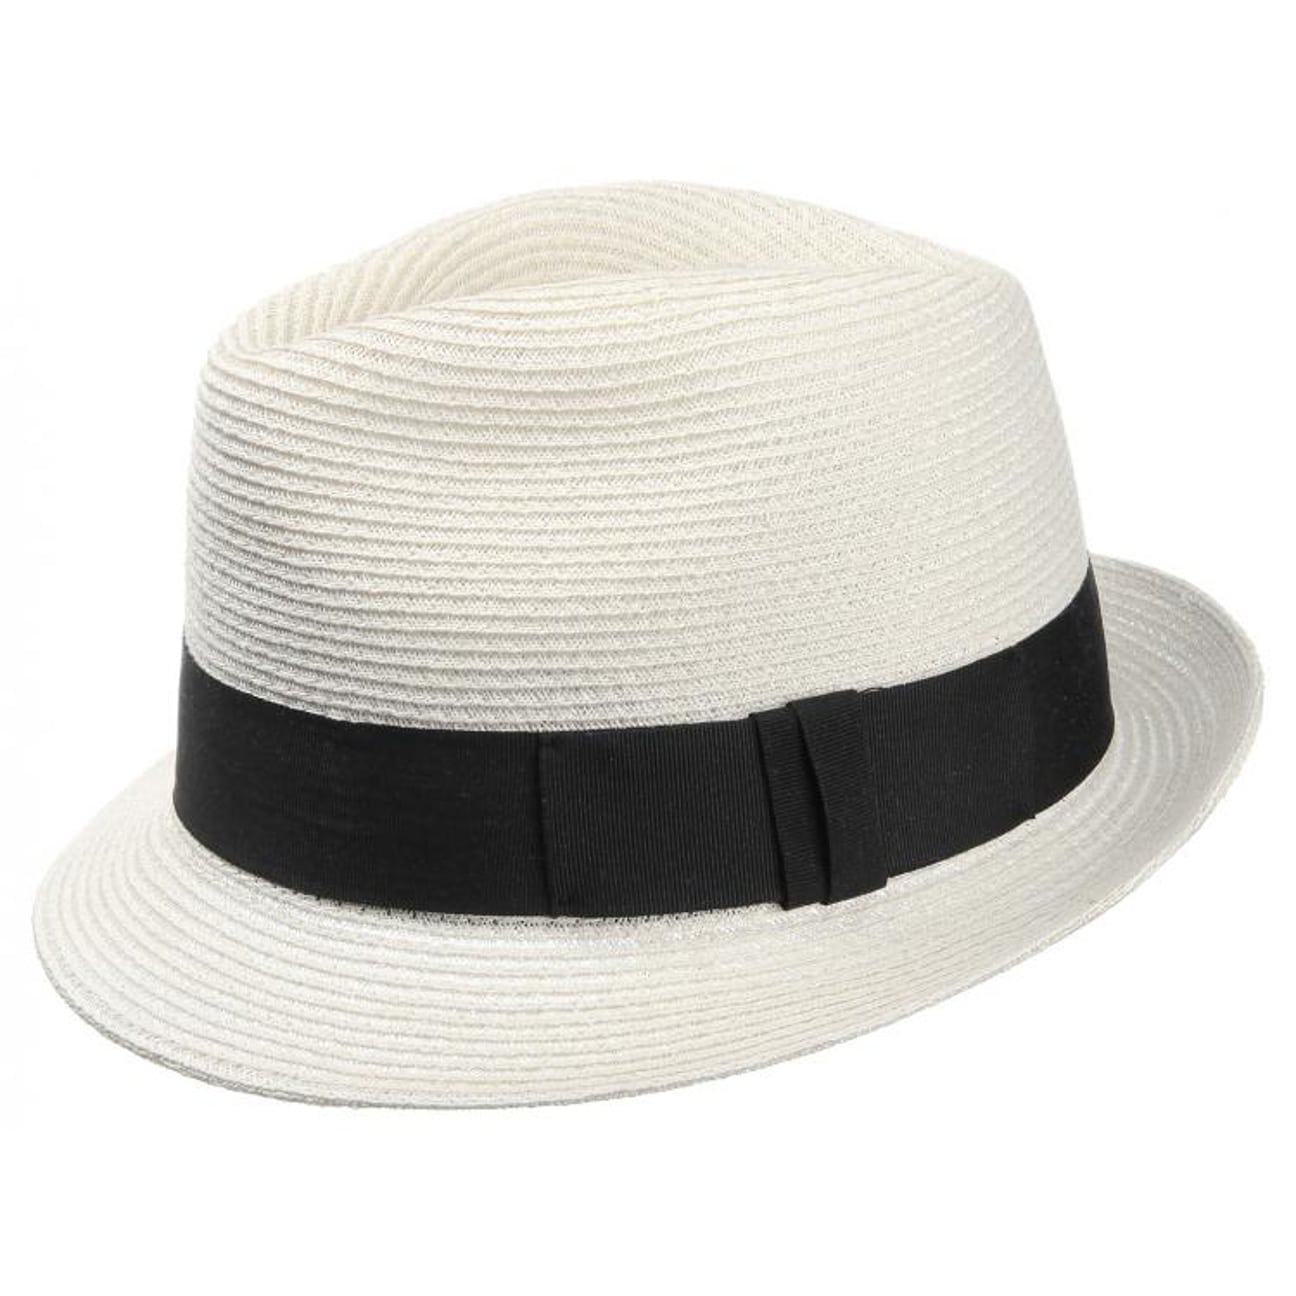 Henry Cappello Trilby by Frank Sinatra - natura 1 14293ced60c5